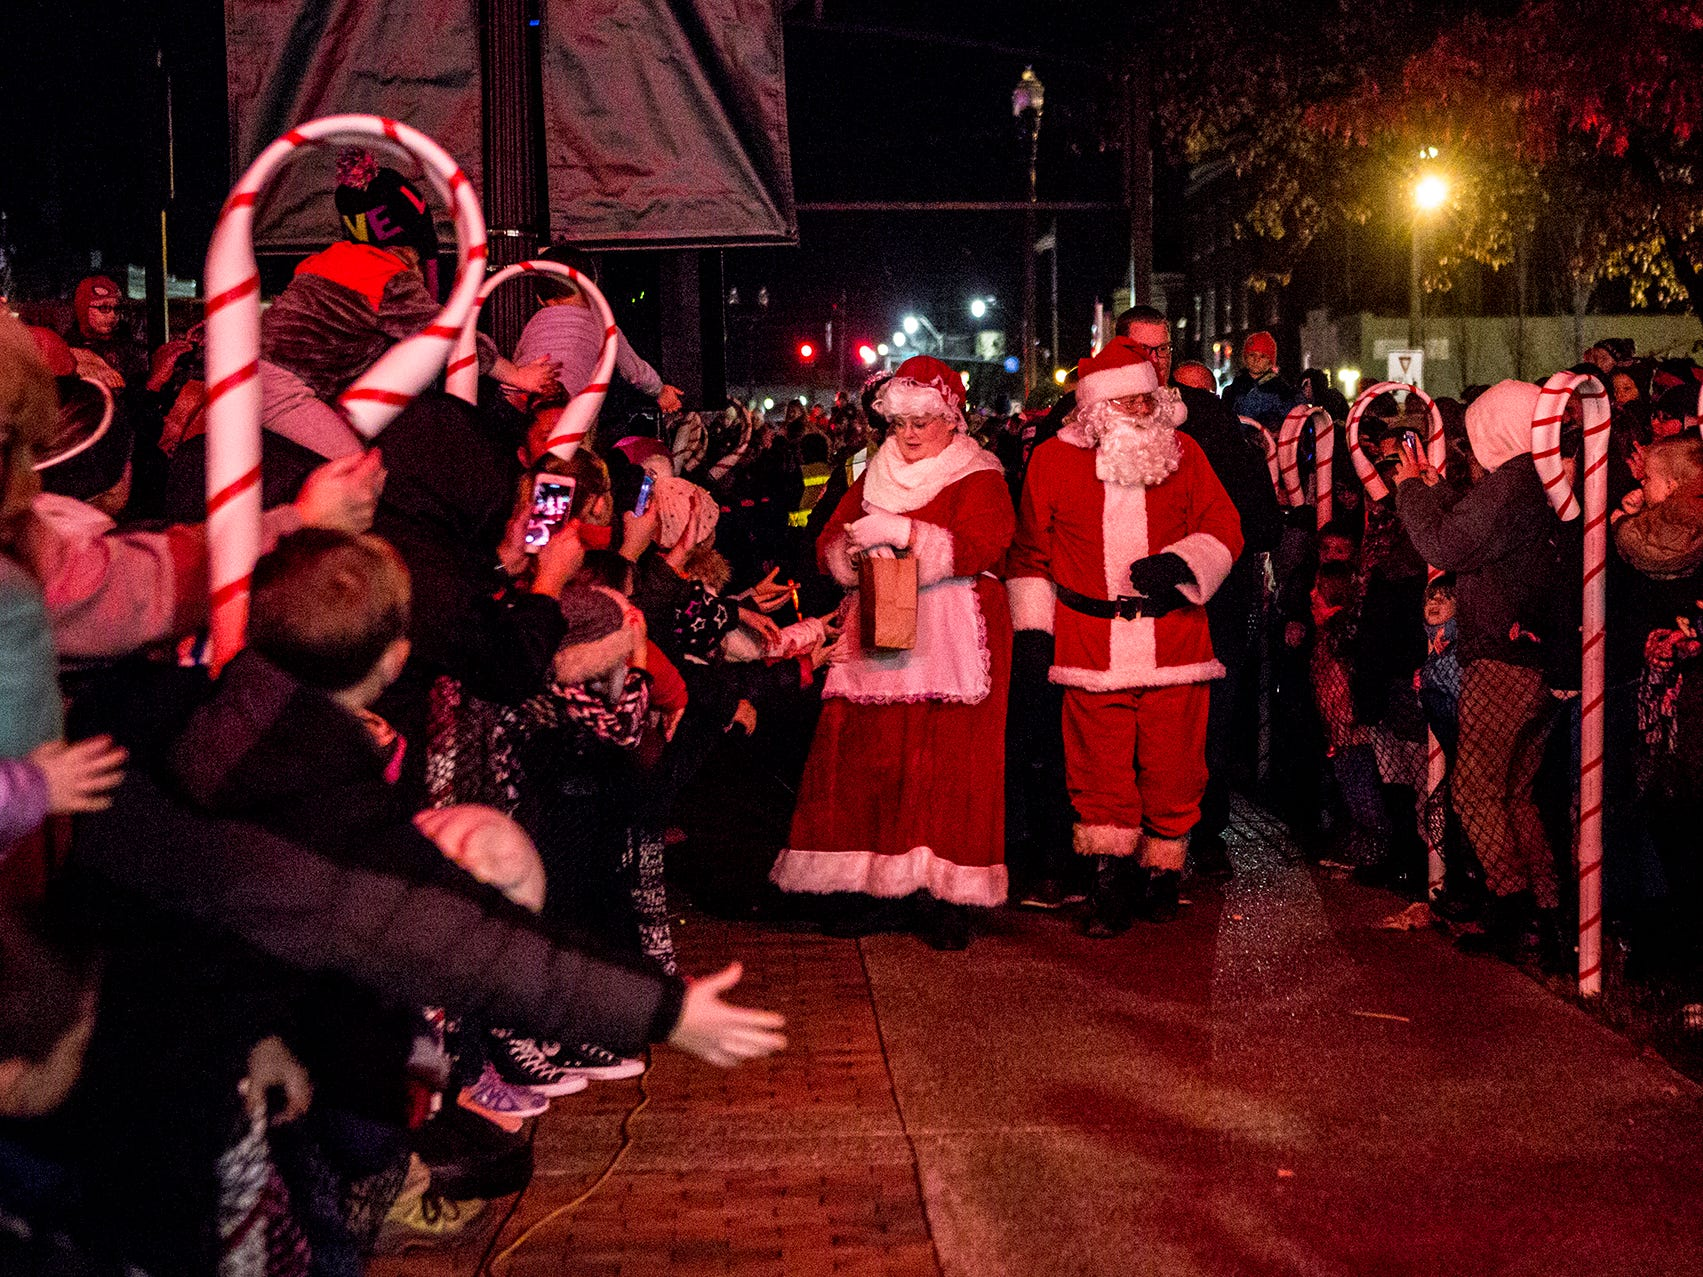 Crowds gathered around the Licking County Courthouse Friday evening to greet Santa and Mrs. Claus, and watch as the courthouse lights came on.